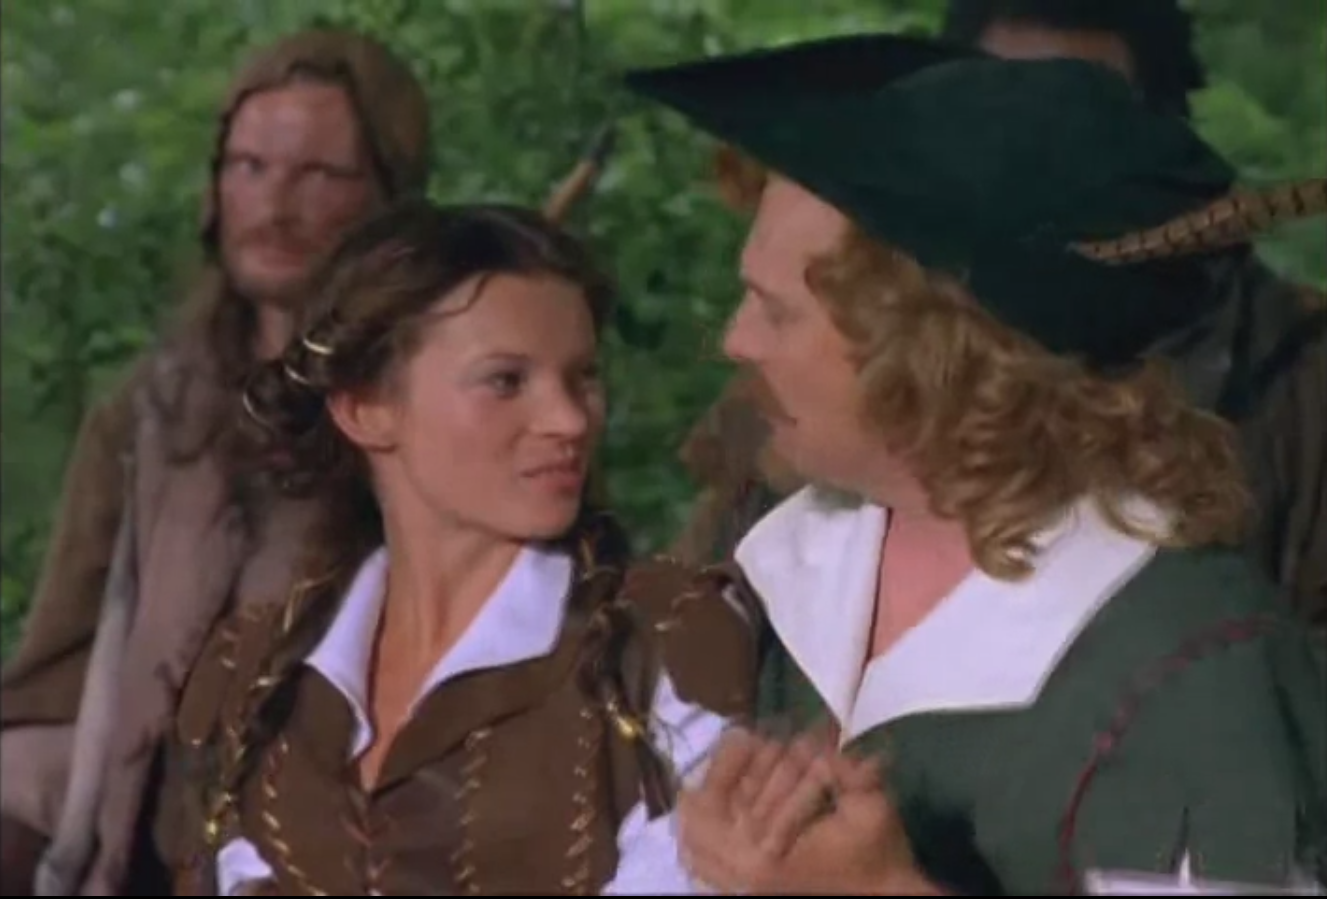 The last Rik Mayall Blackadder appearance - As Robin Hood in the Millennium special